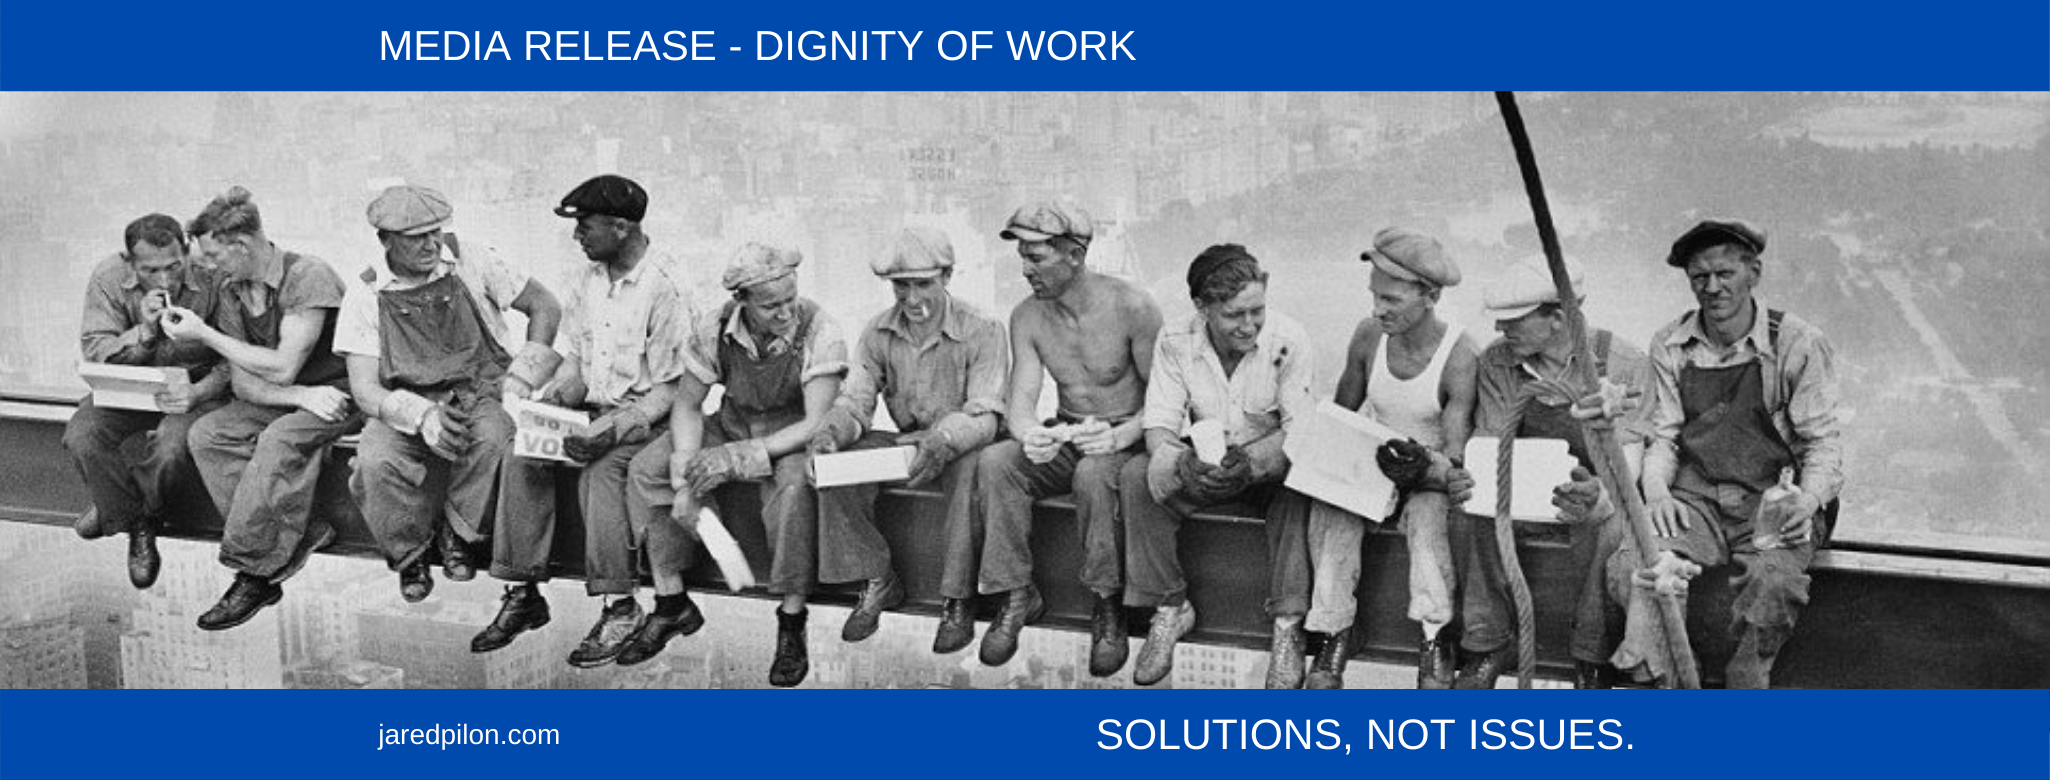 Dignity of Work